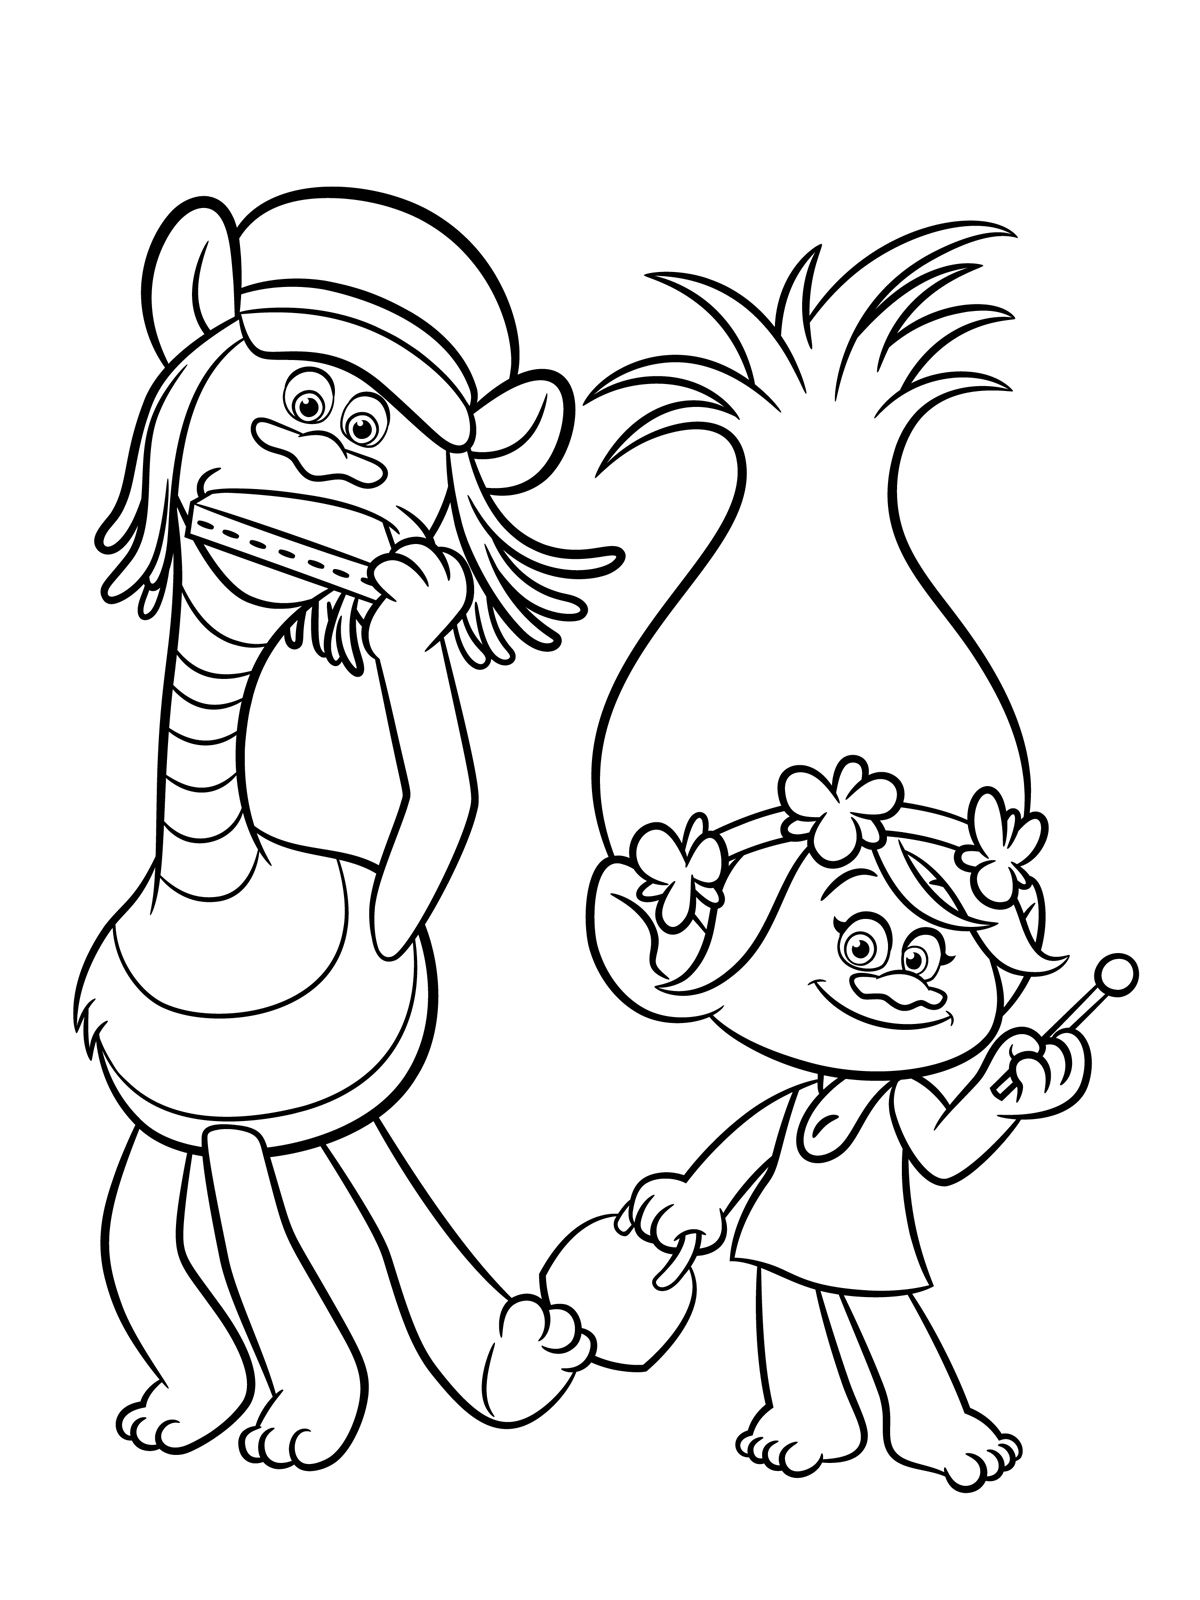 coloring pages printables free printable tangled coloring pages for kids cool2bkids printables pages coloring